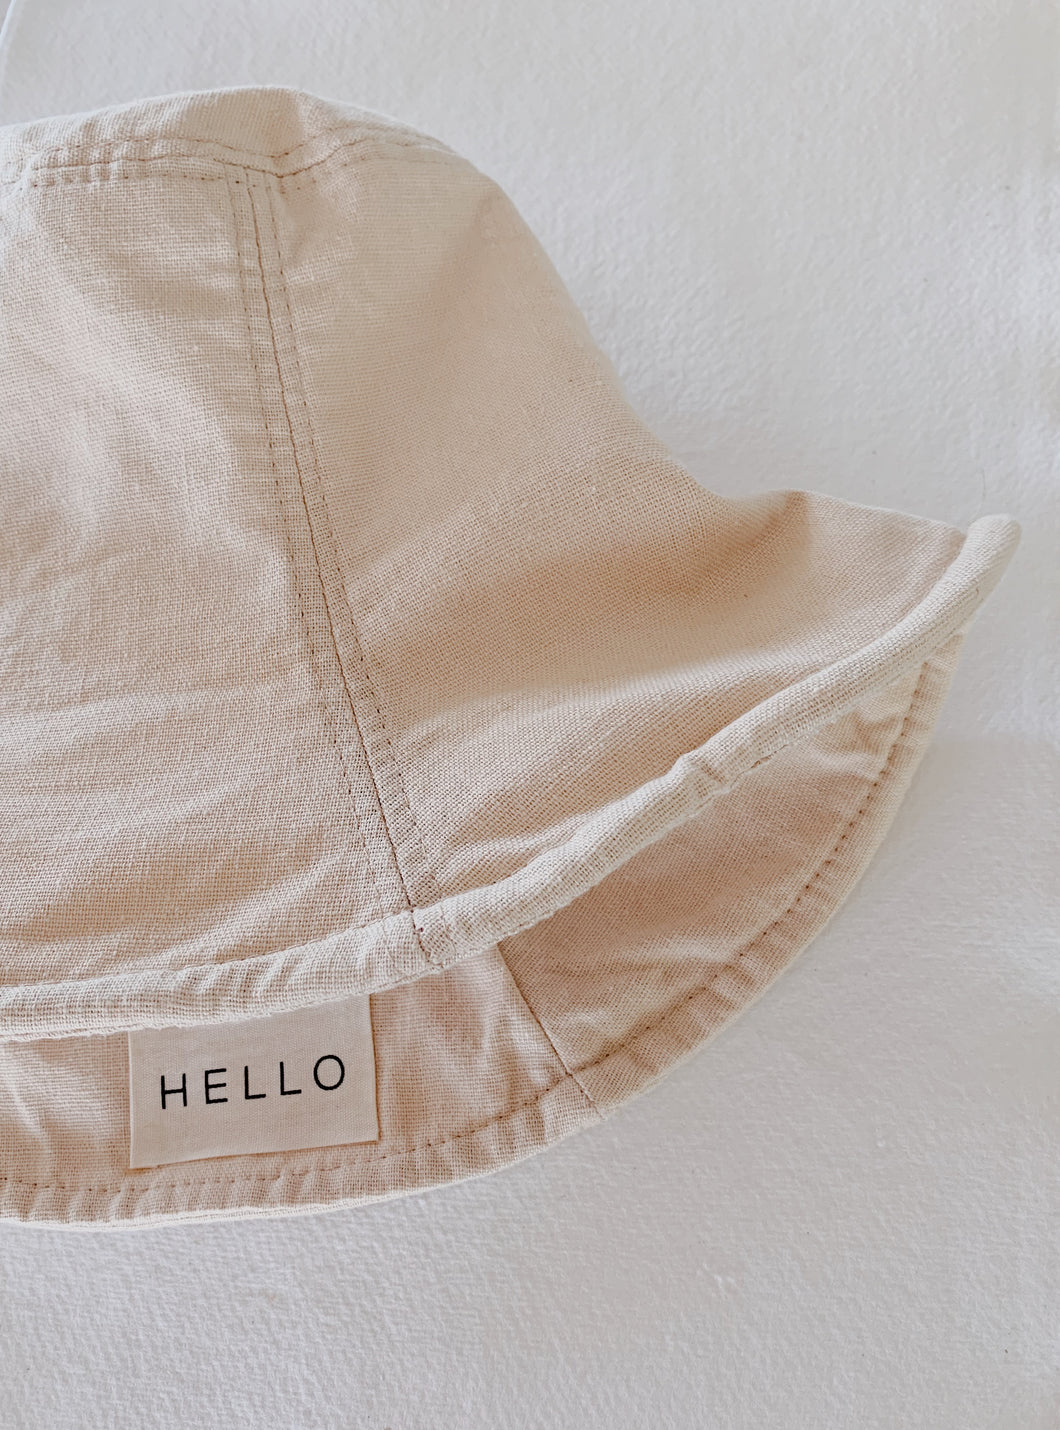 HELLO BUCKET HAT | NATURAL